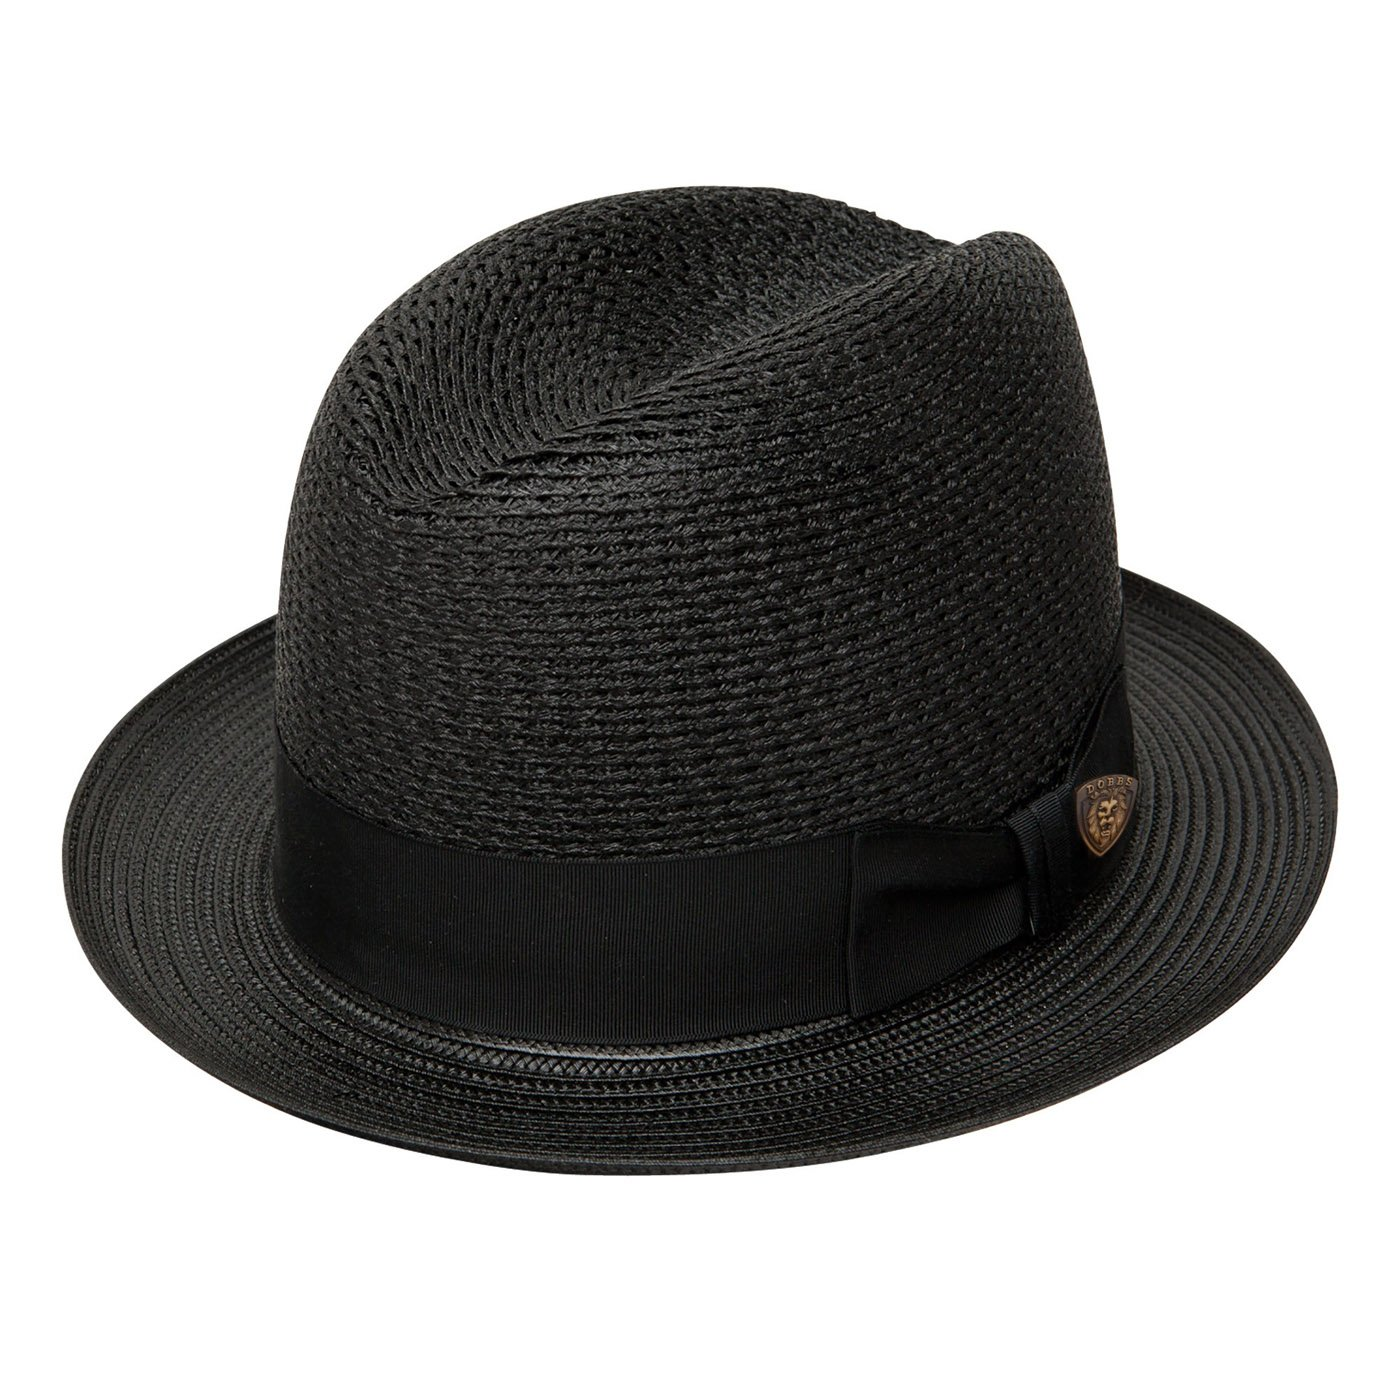 Black Stetson And Dobbs Hats DSMDSN-0820 Madison Hat XS-S